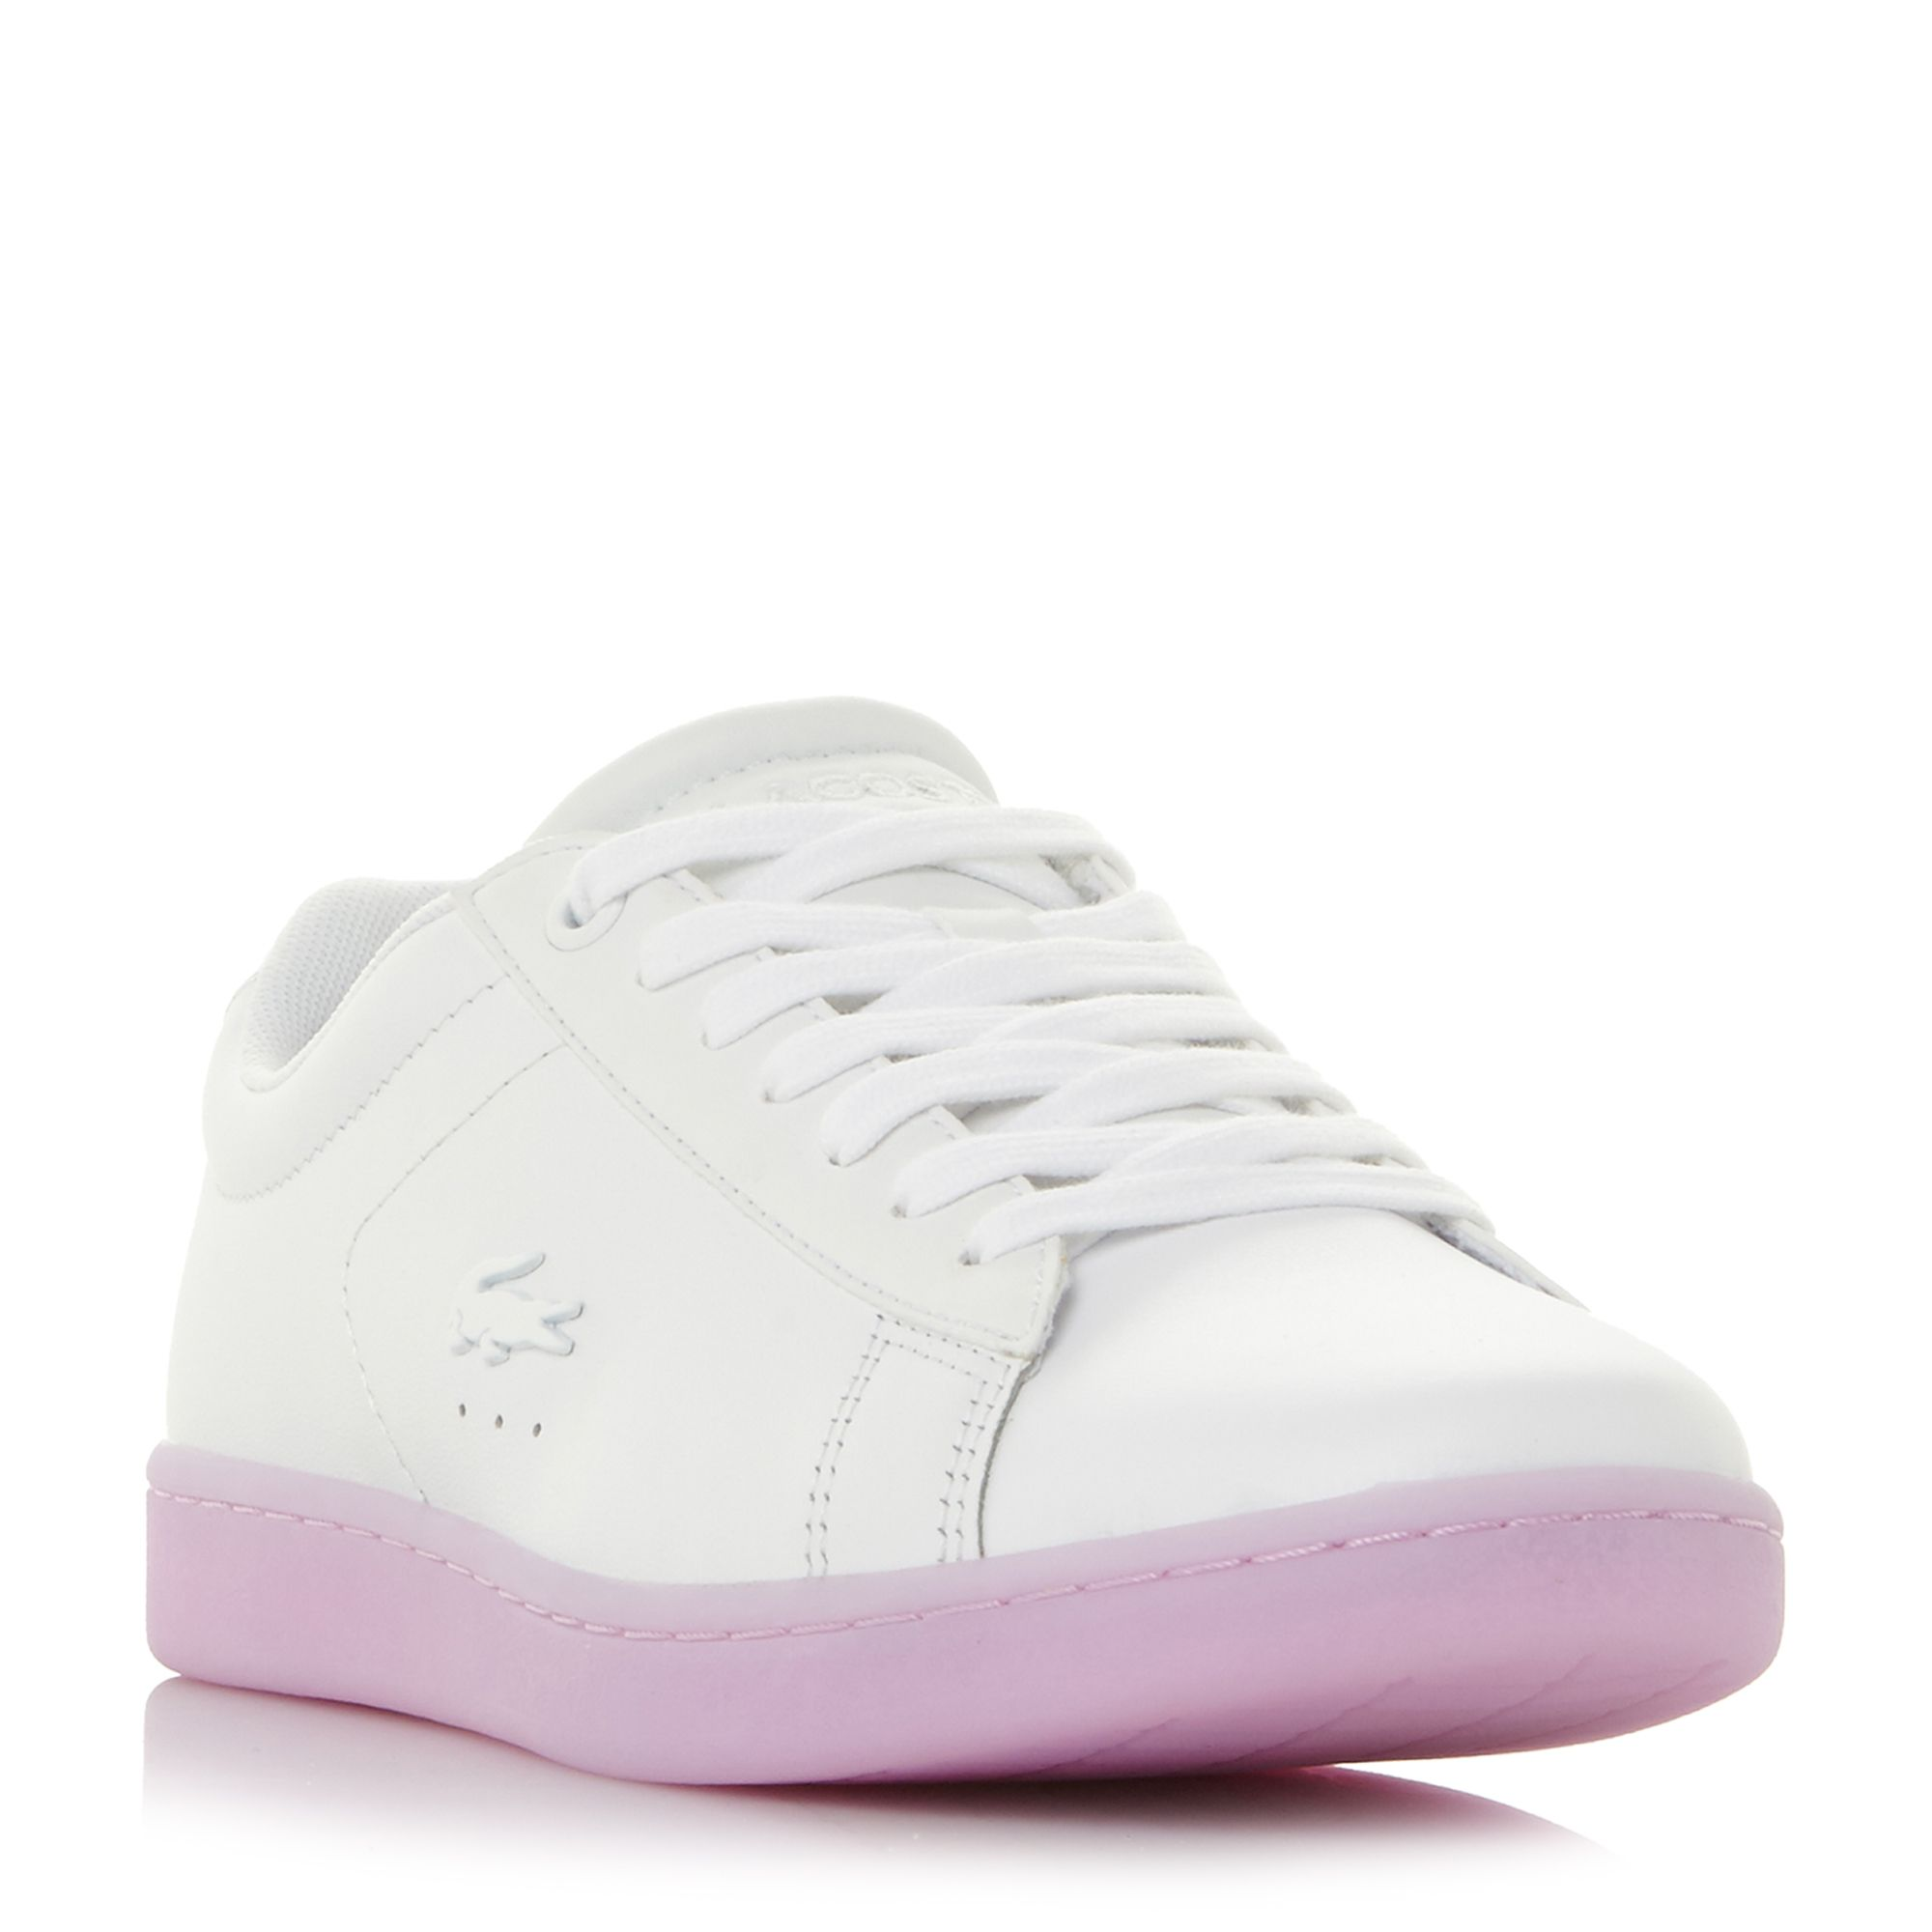 Lacoste Carnaby Evo 118 Lace Up Trainers, Pink